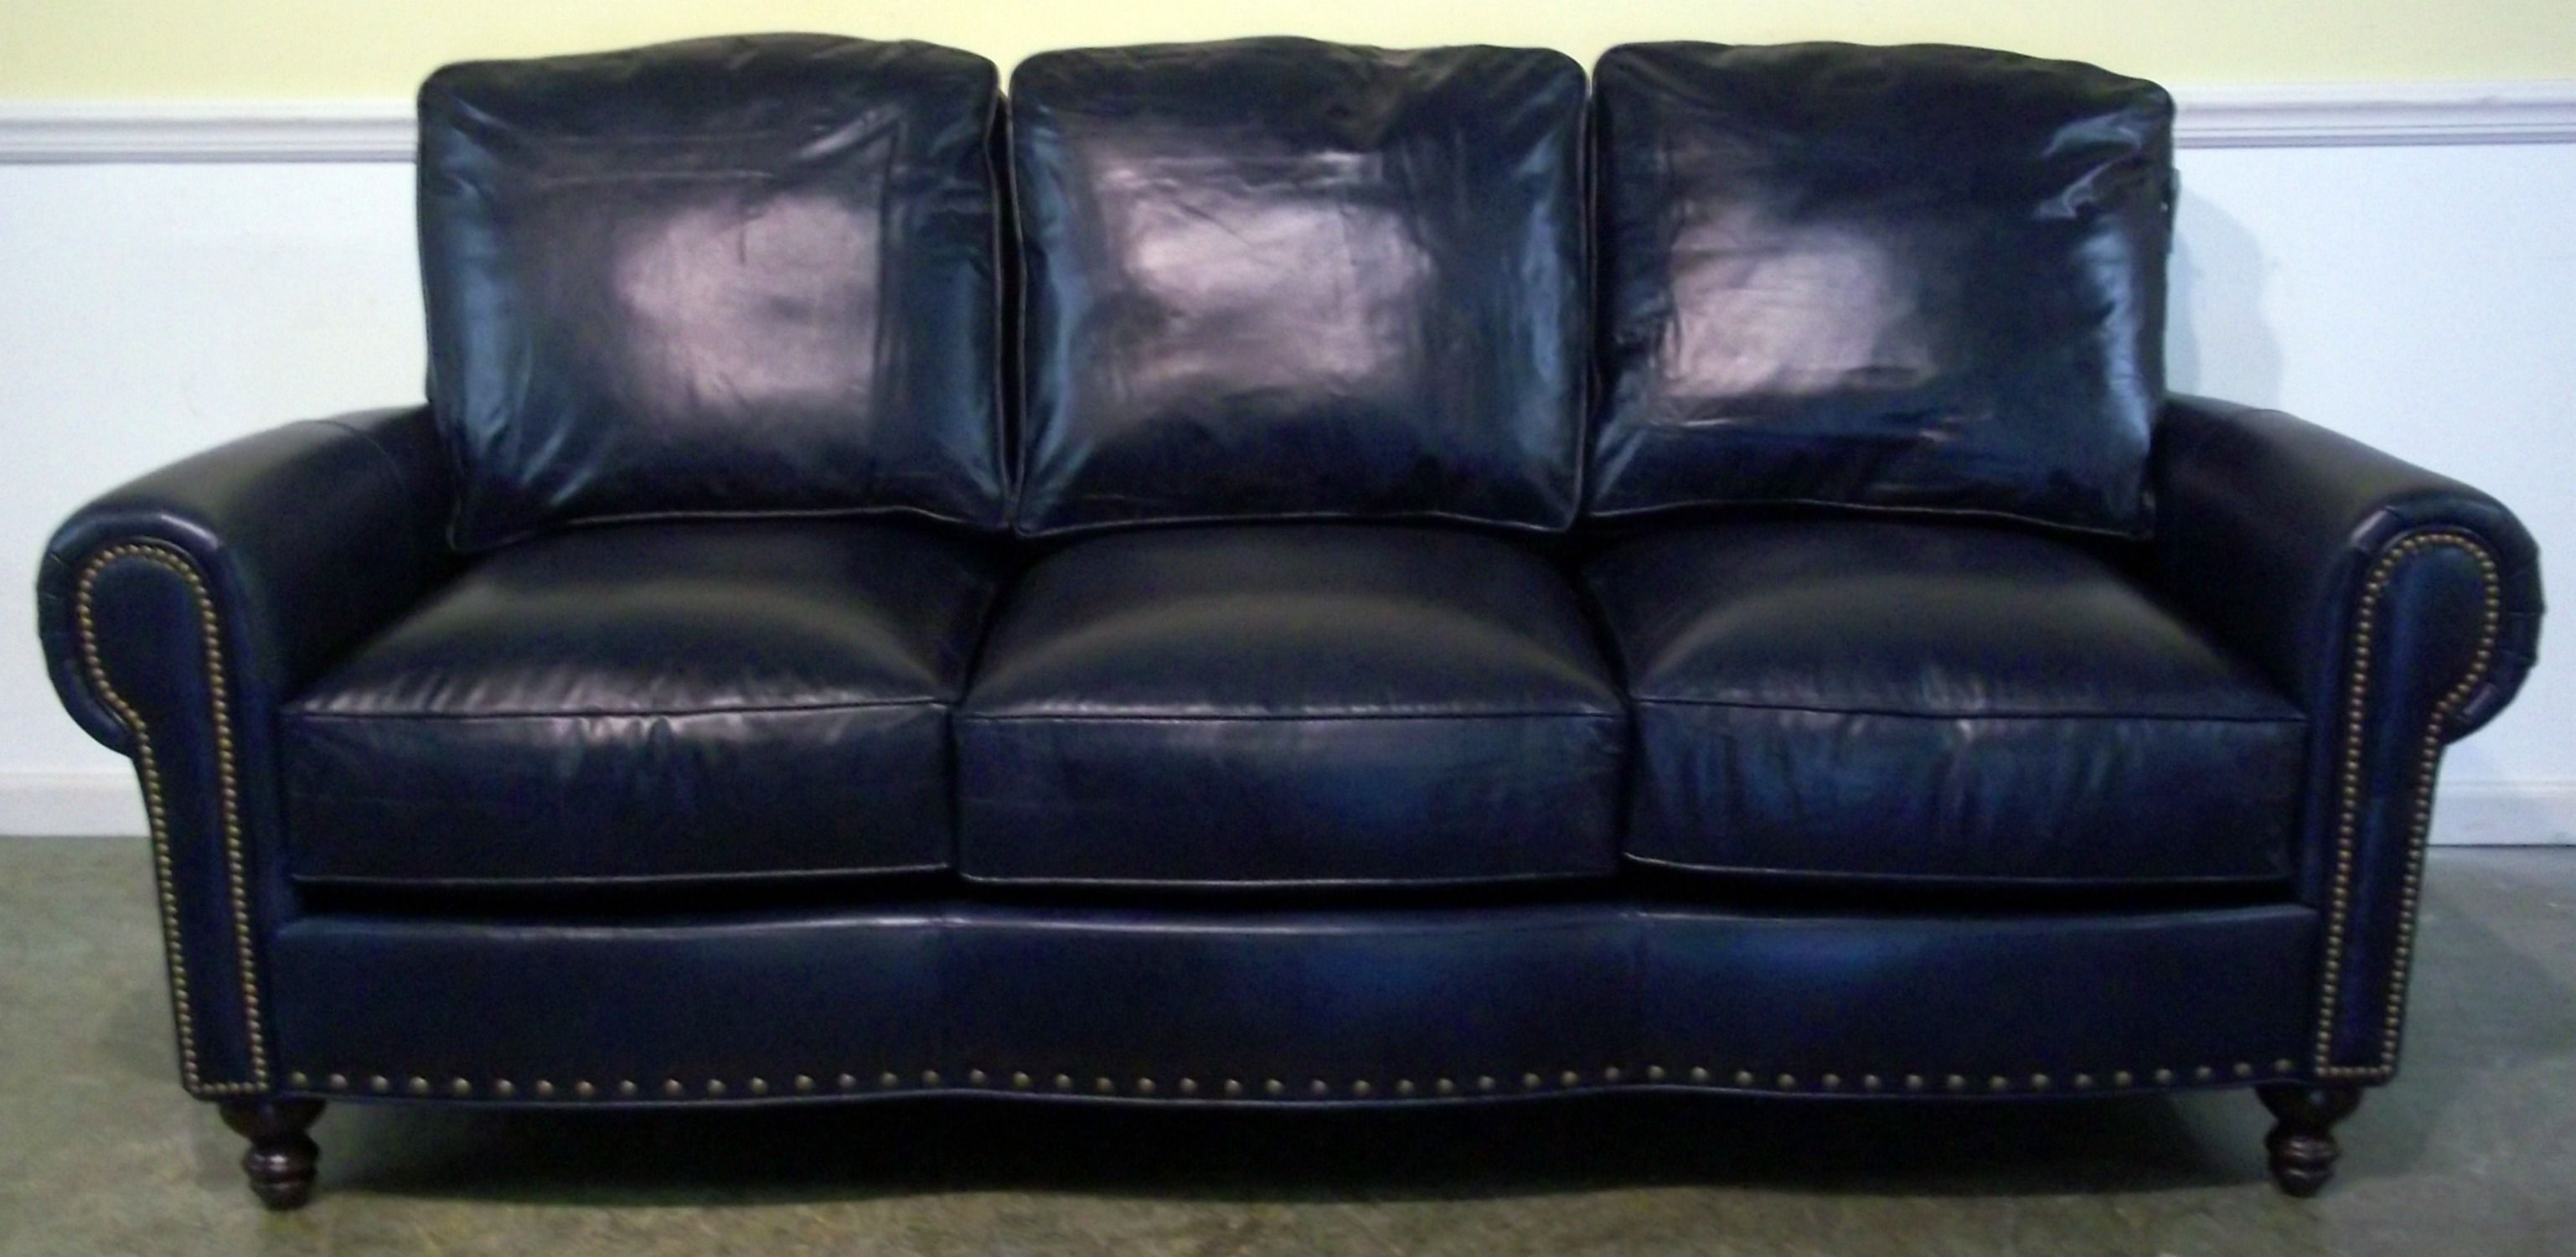 Best Navy Blue Leather Chair Blue Leather Sofa Blue Leather 400 x 300